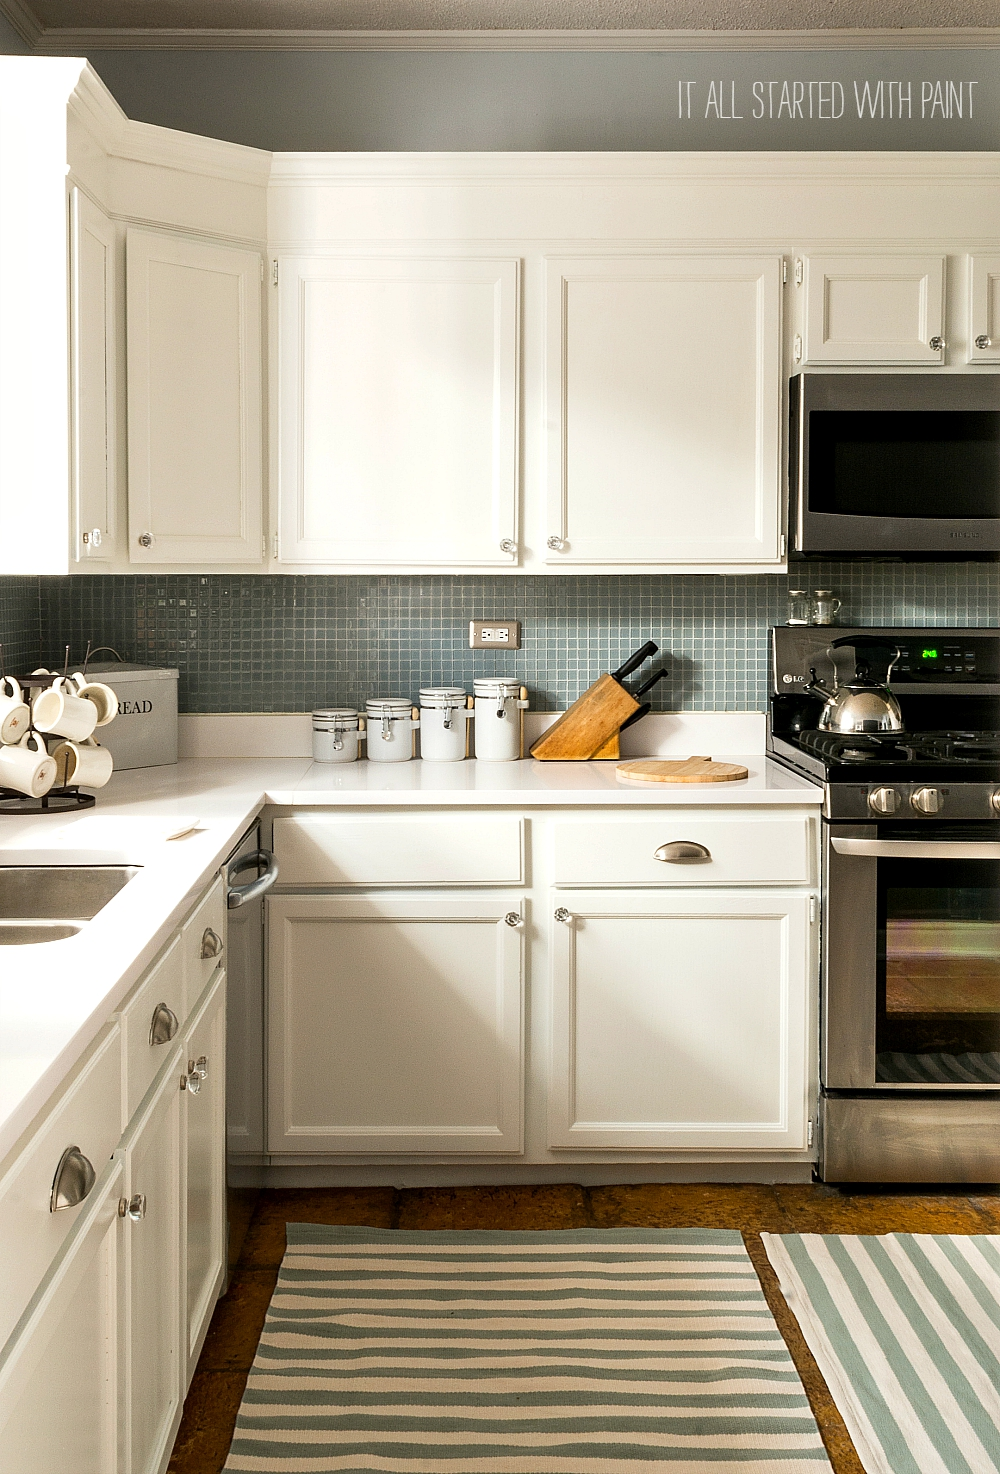 Grade Kitchen Makeover with White Paint